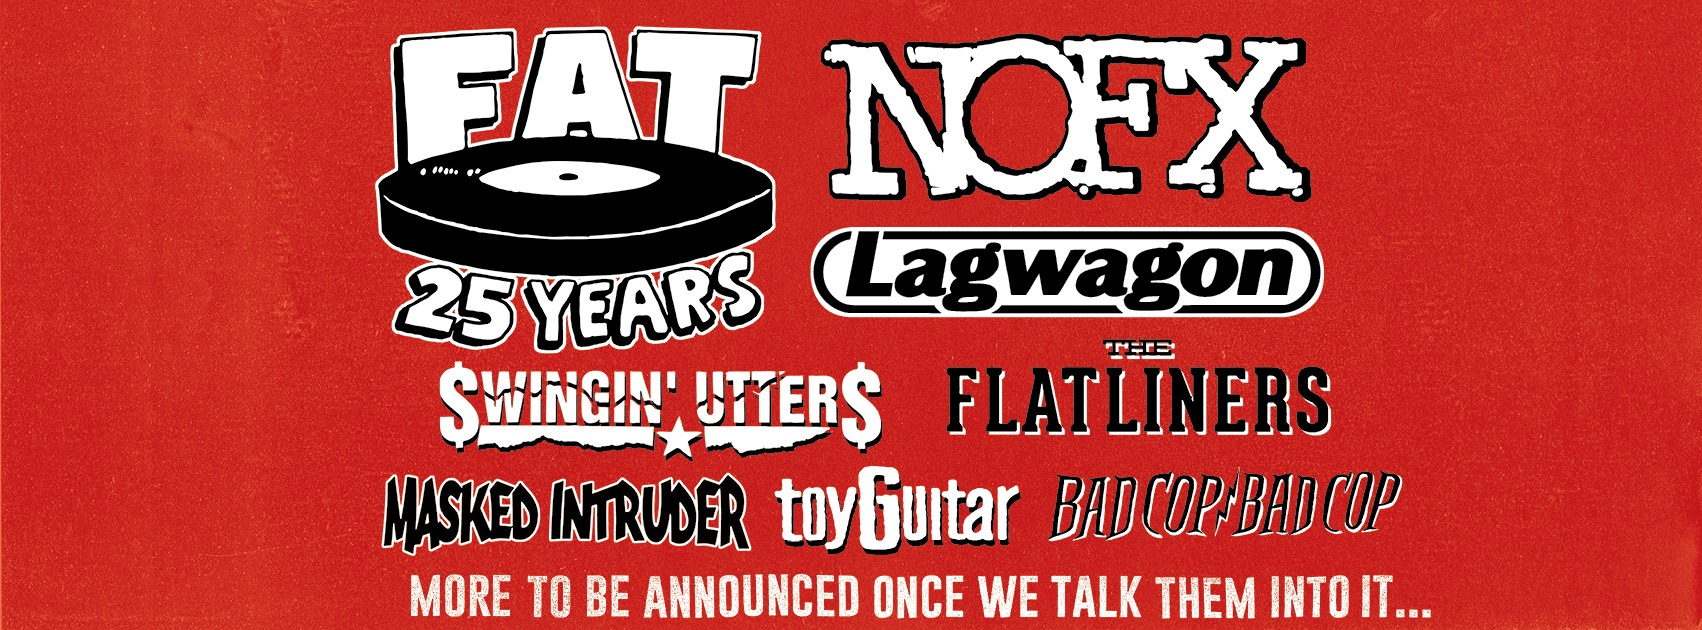 Fat Wreck Chords Announces 25th Anniversary Tour : idobi